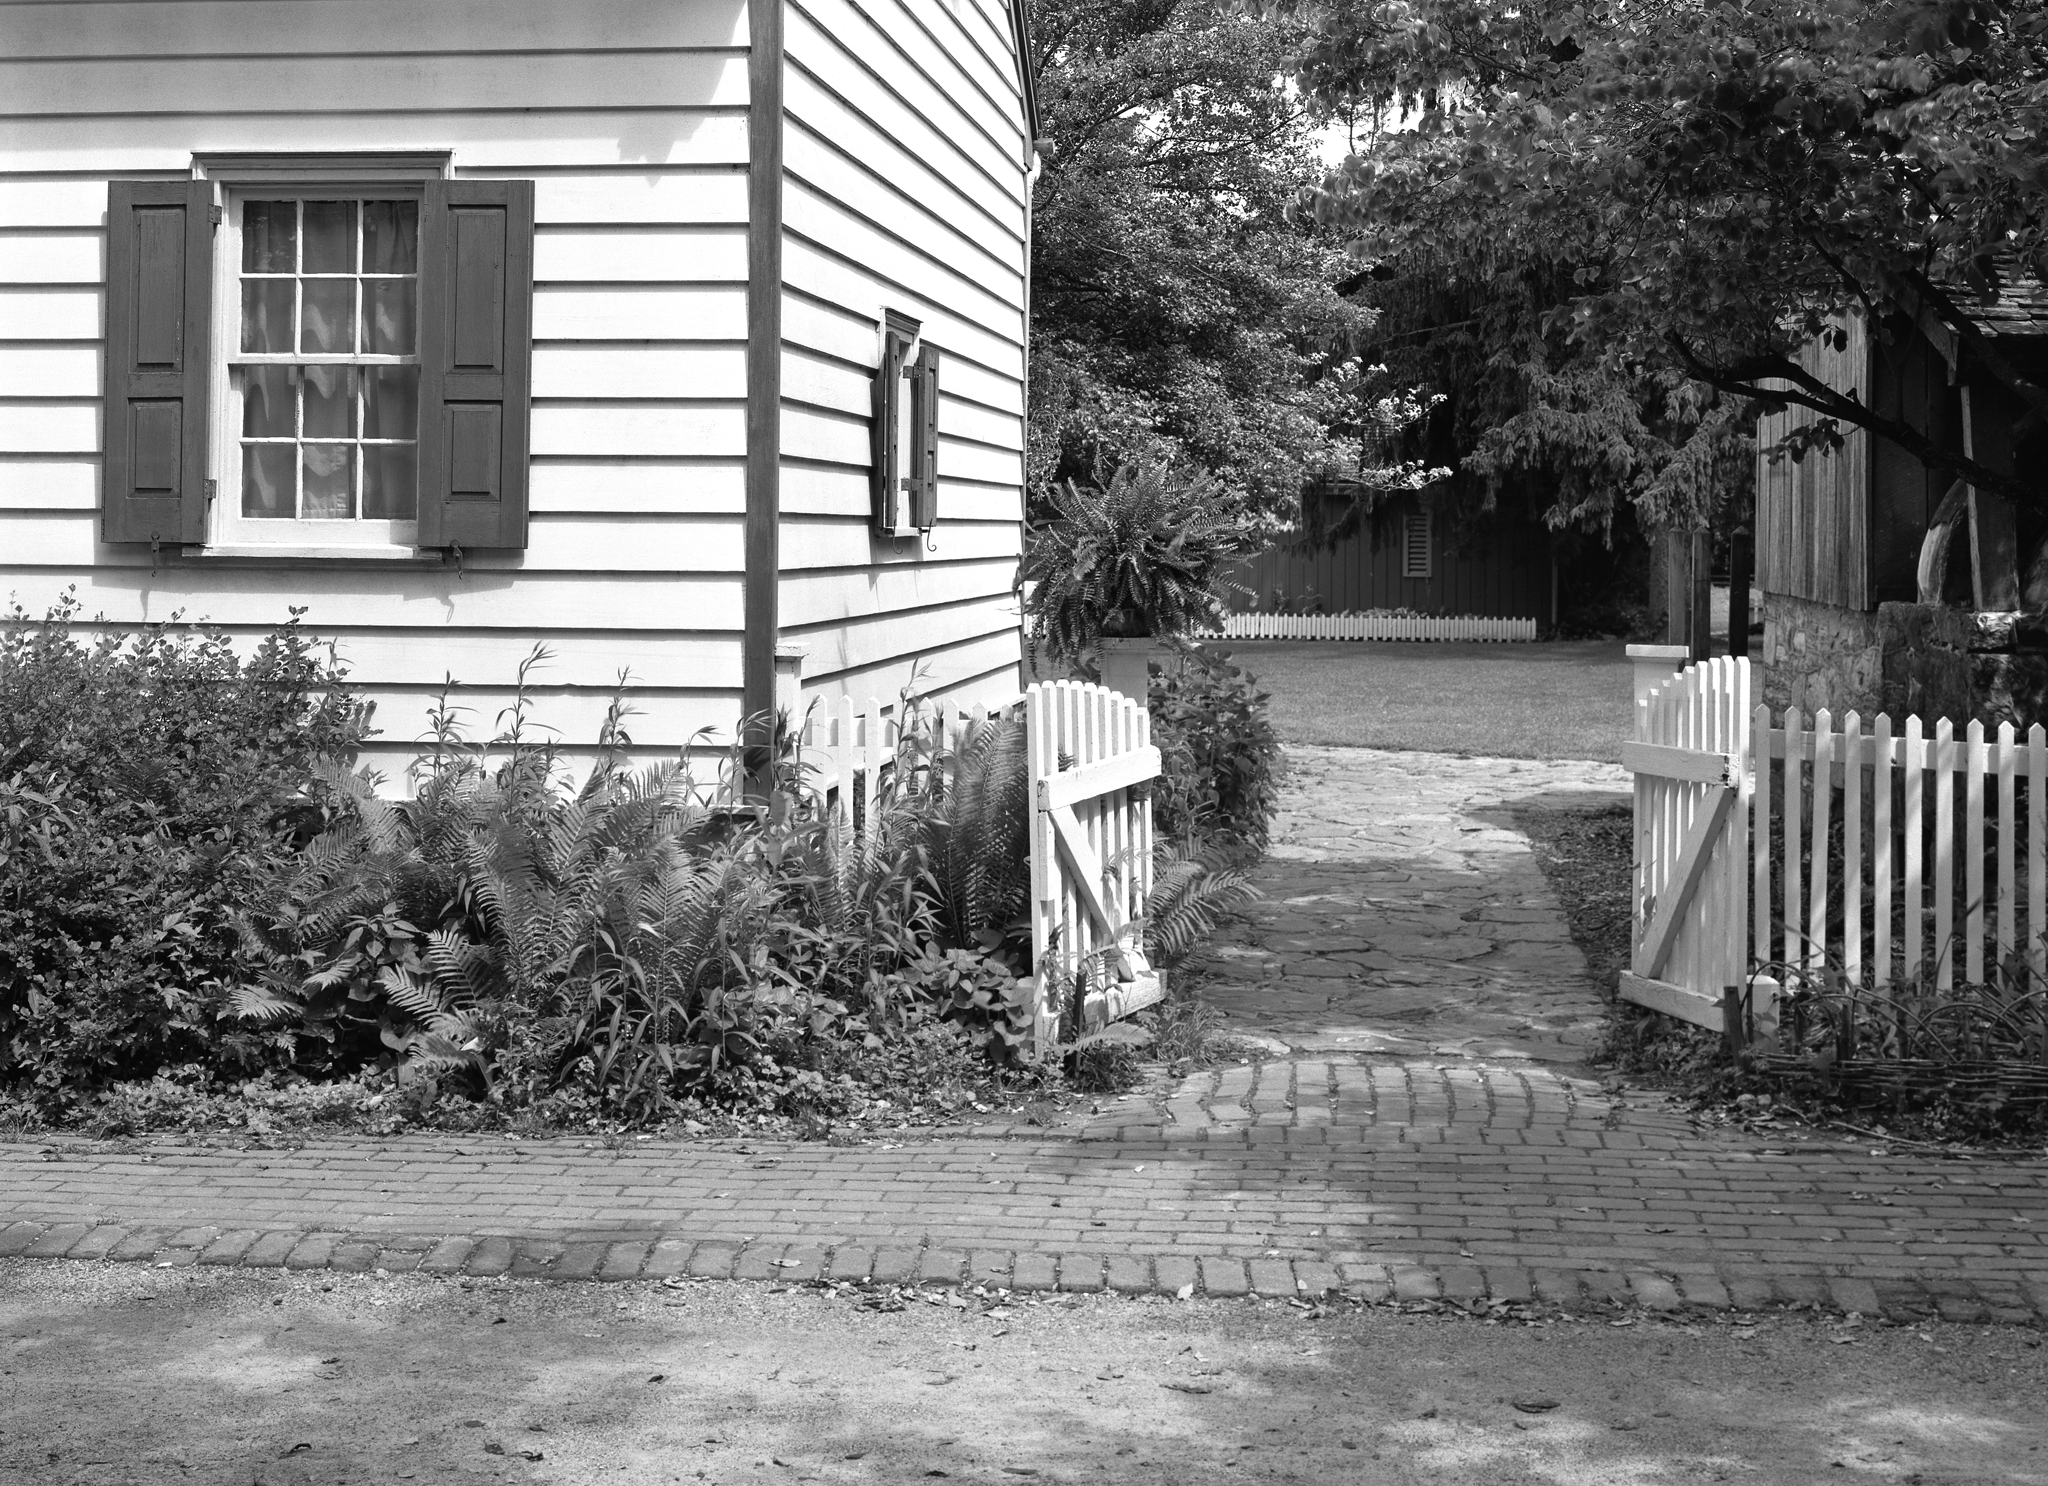 4x5_for_365_project_0184_Landis_Valley_picket_fence.png